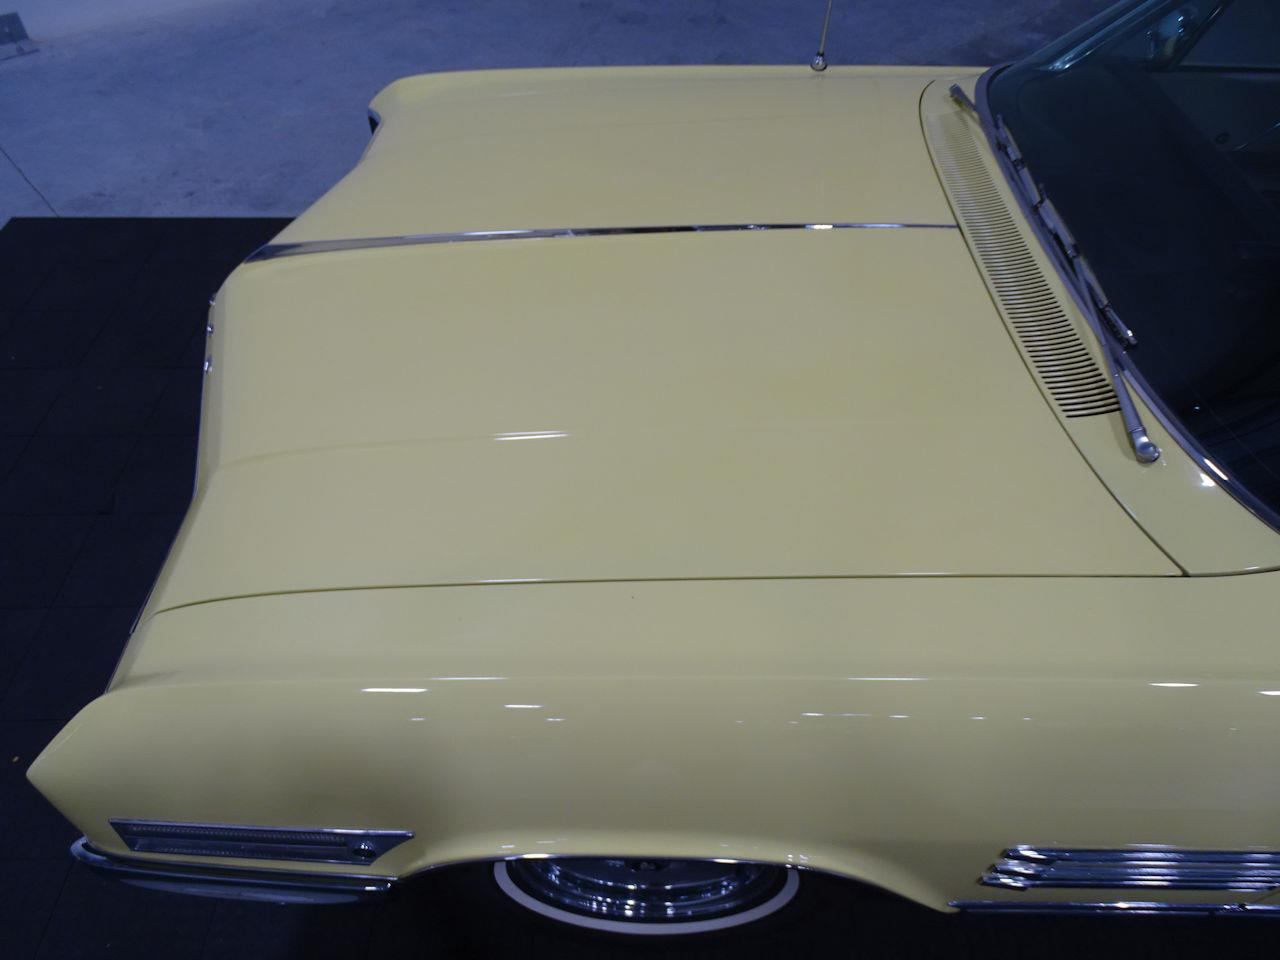 Large Picture of Classic '64 Buick Wildcat located in Texas - $35,995.00 Offered by Gateway Classic Cars - Houston - MO52